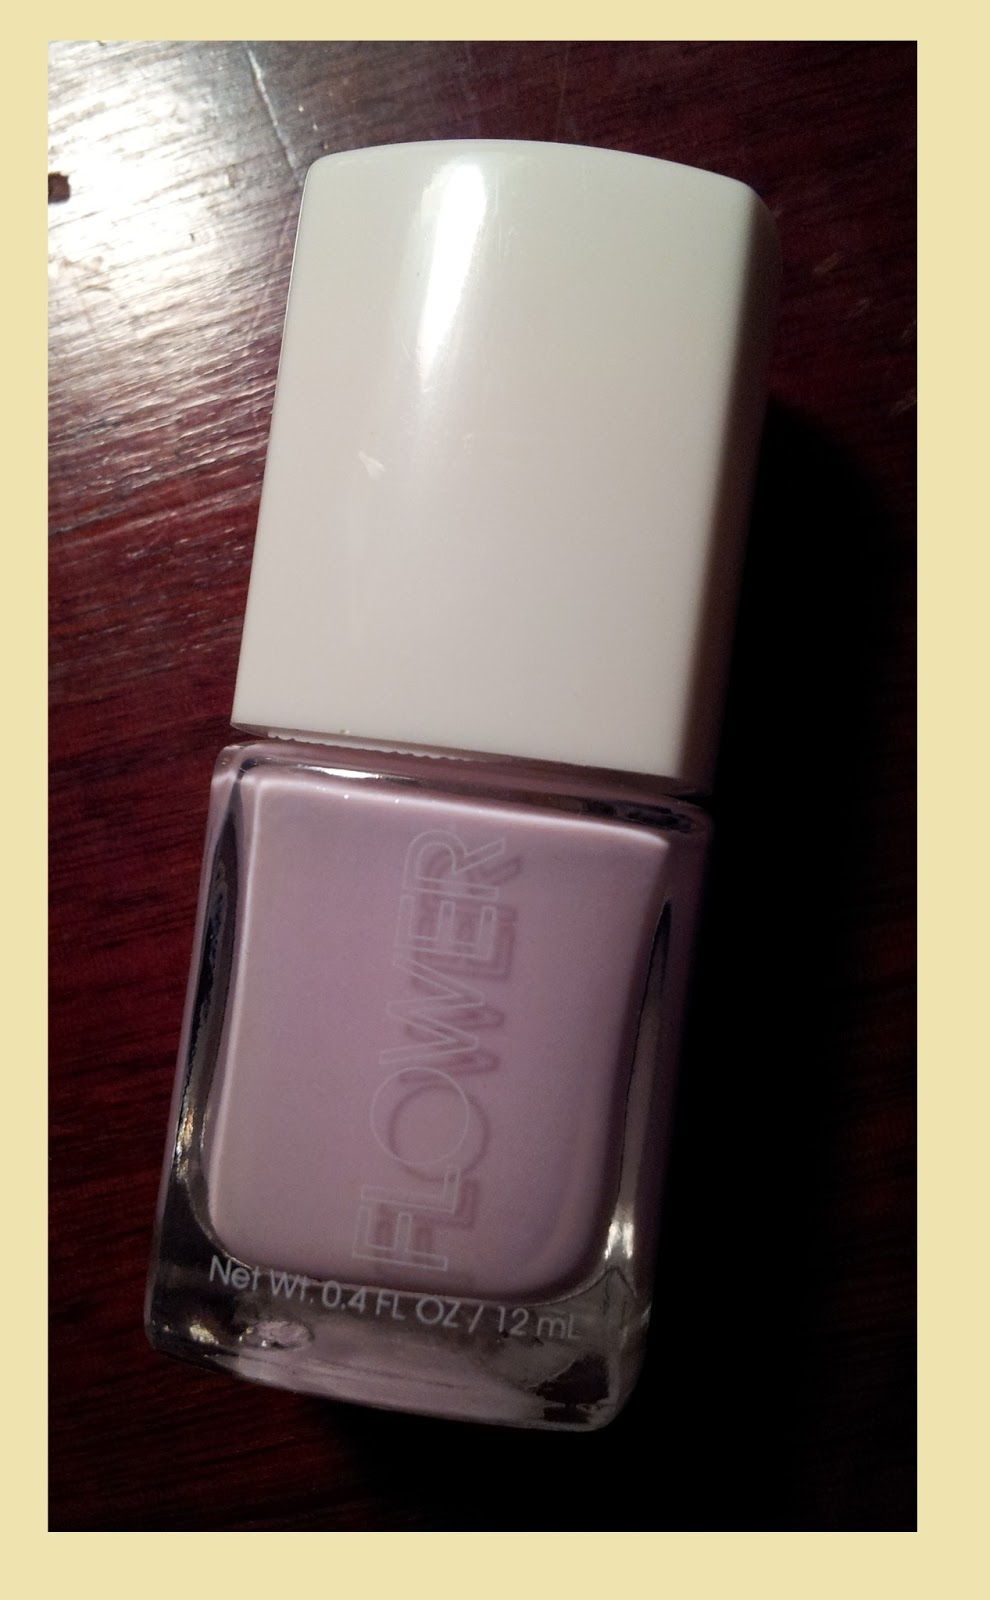 Lainamarie91 Flower Beauty Naild It Nail Lacquer In Np6 I